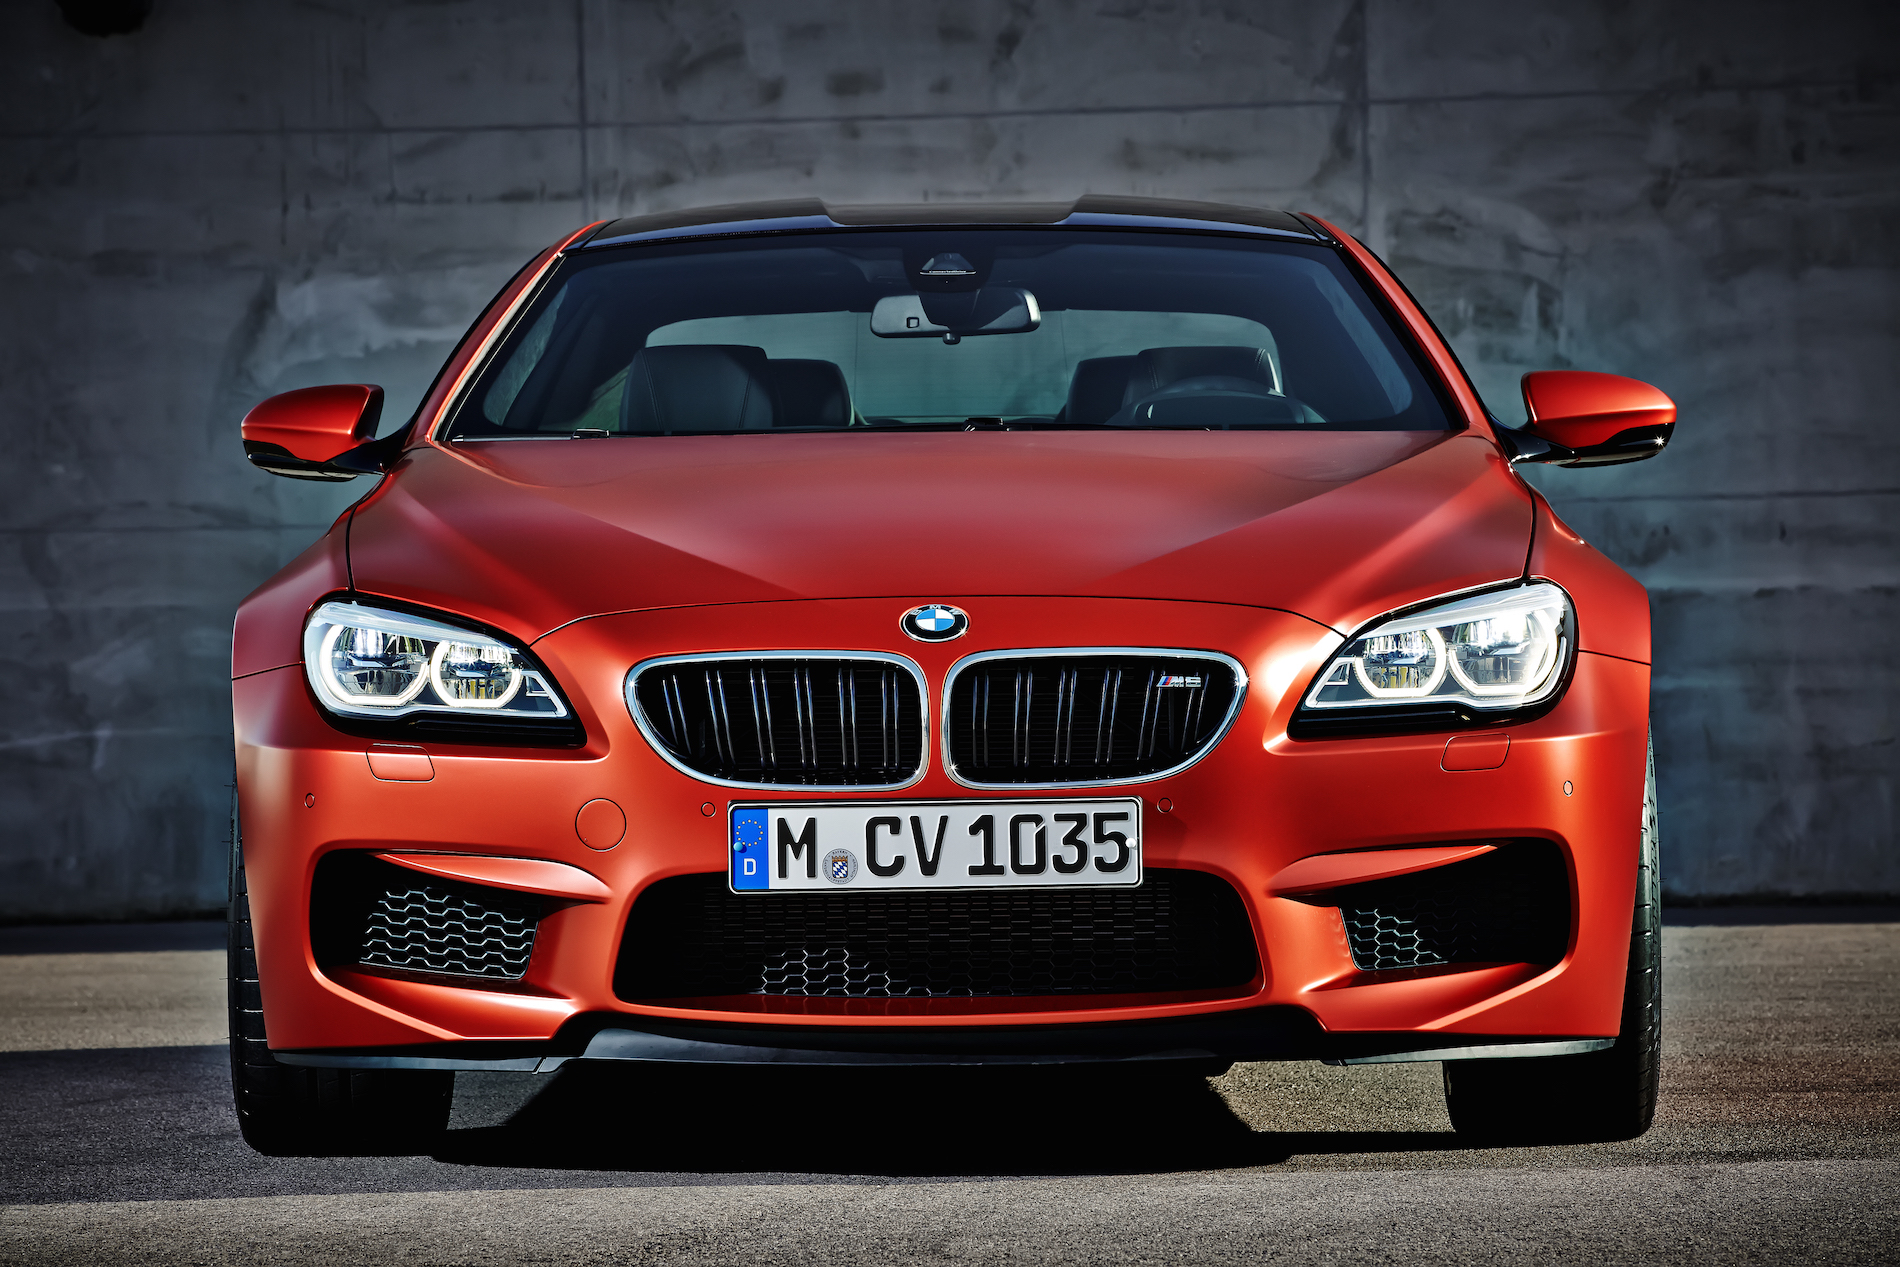 2015 Bmw 6 Series Lci Facelift And M6 Models